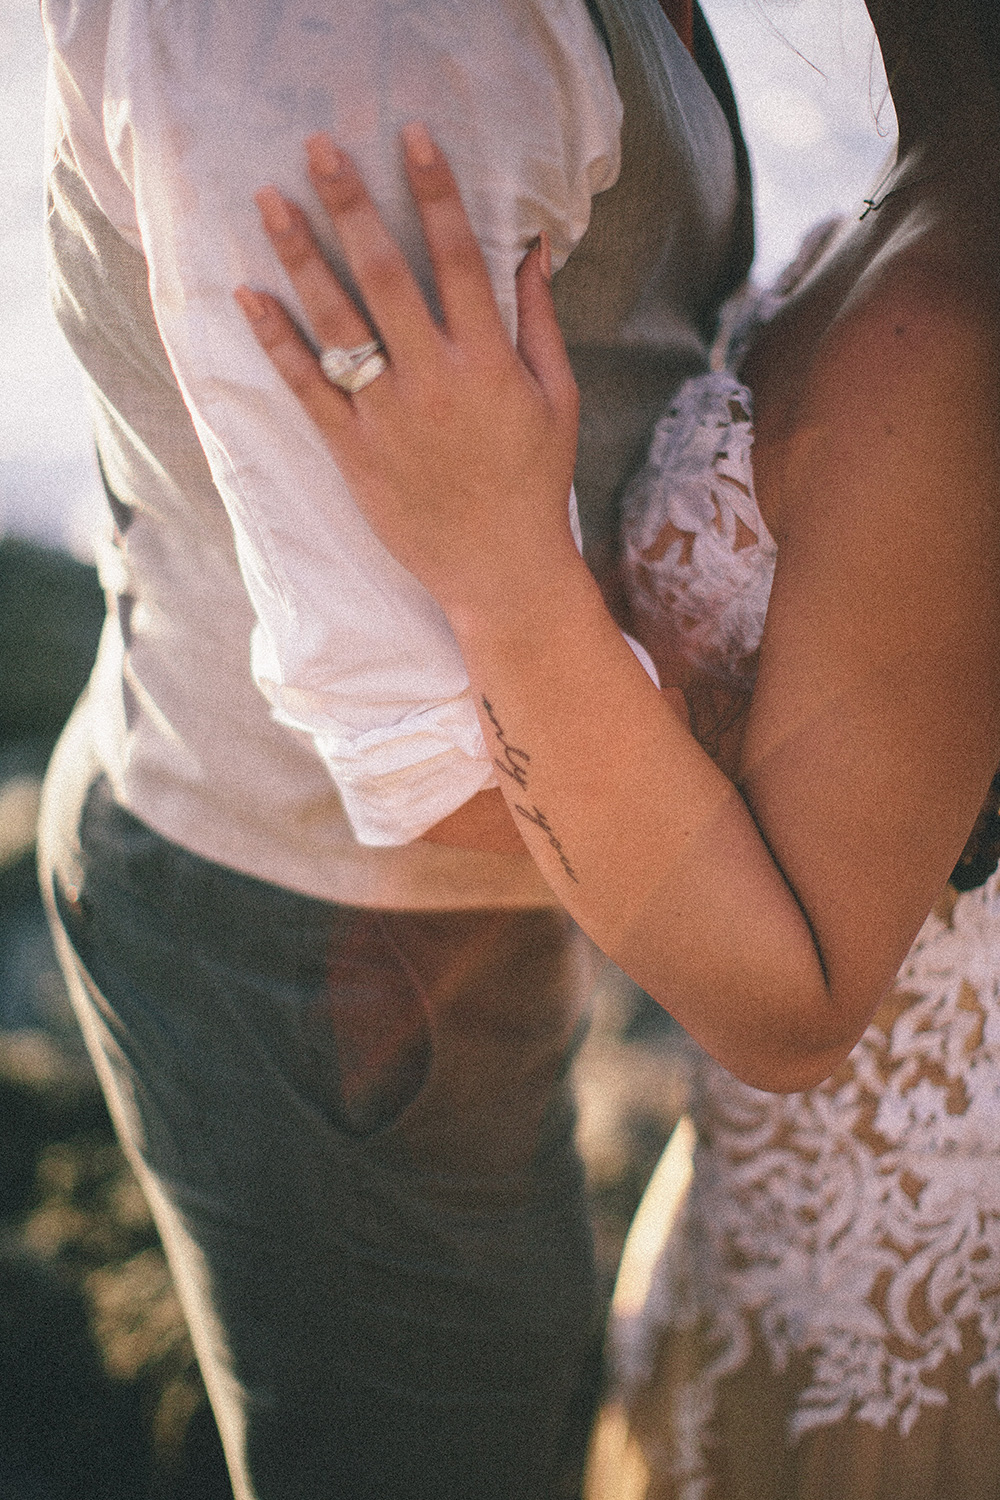 unique and creative wedding photography for the alternative couple.